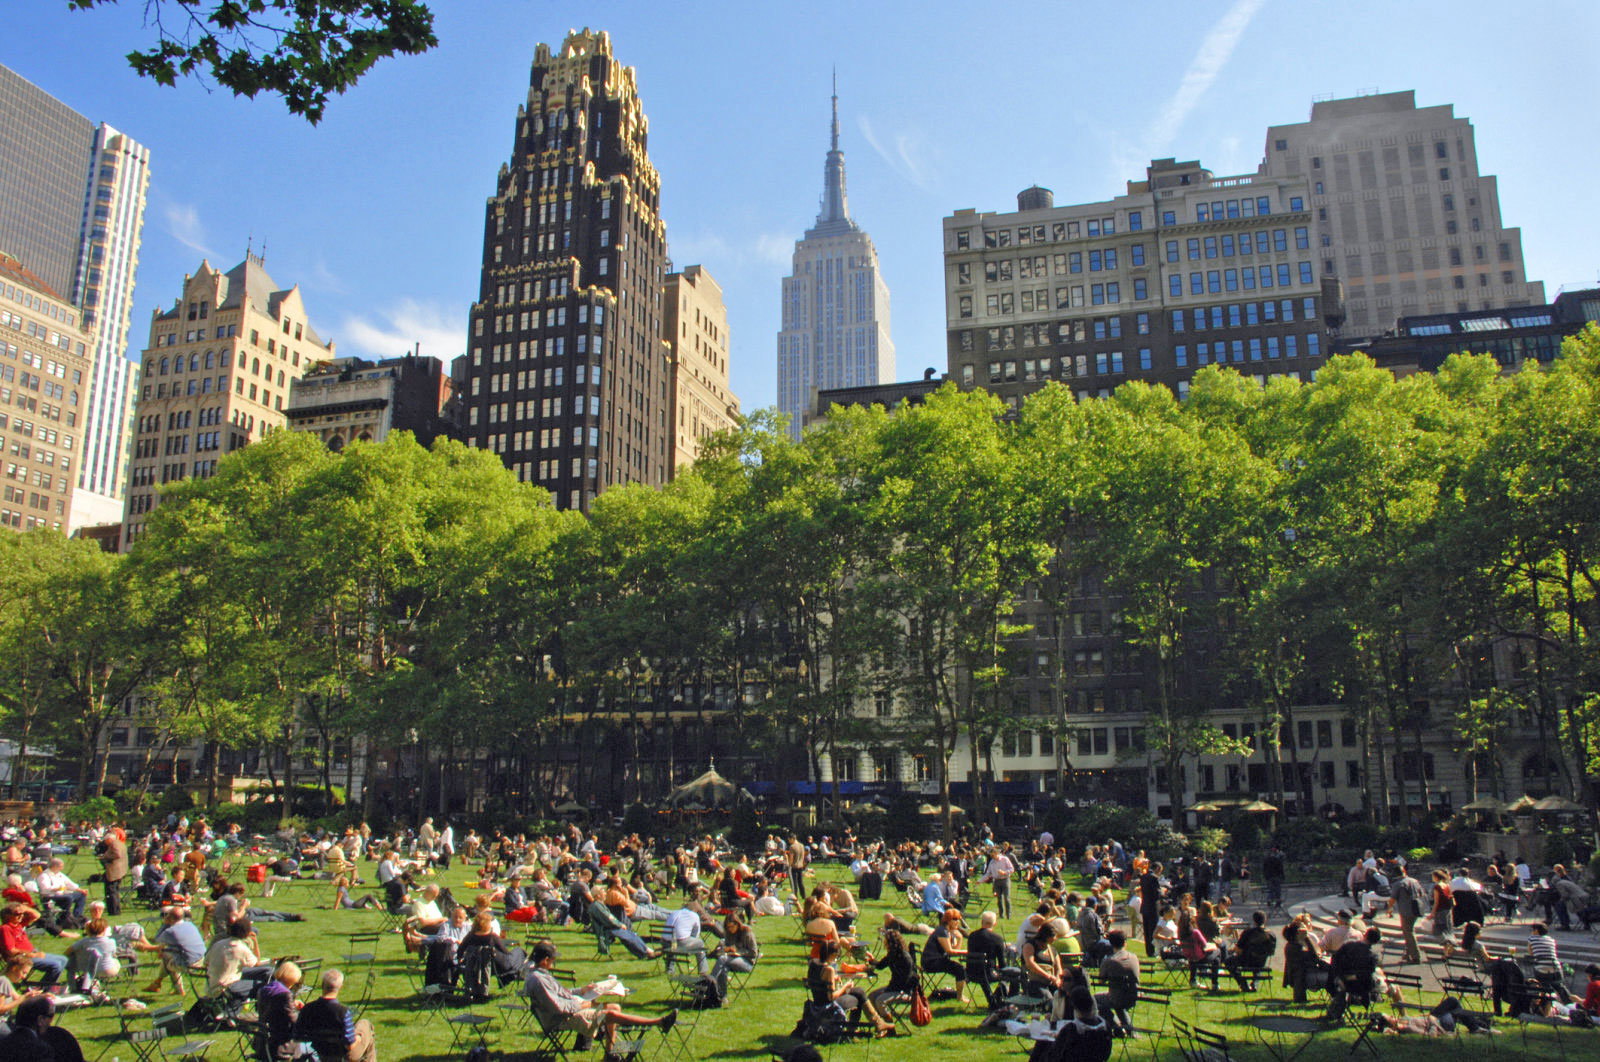 Bryant Park in New York City, right across from Dynata's New York Office